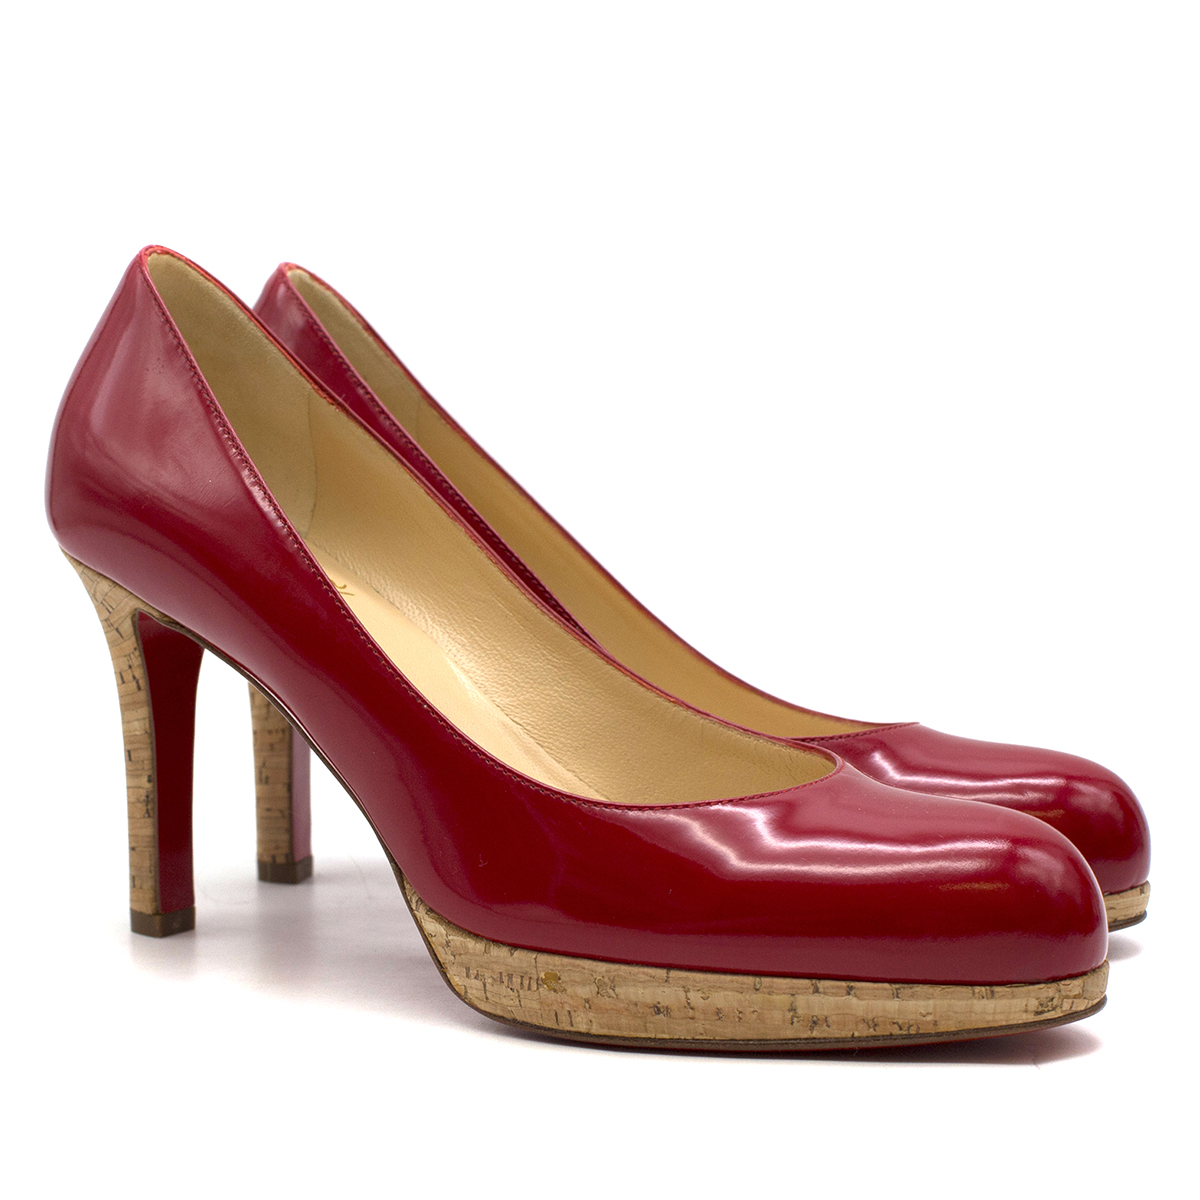 Christian Louboutin Red Patent Leather platform pumps